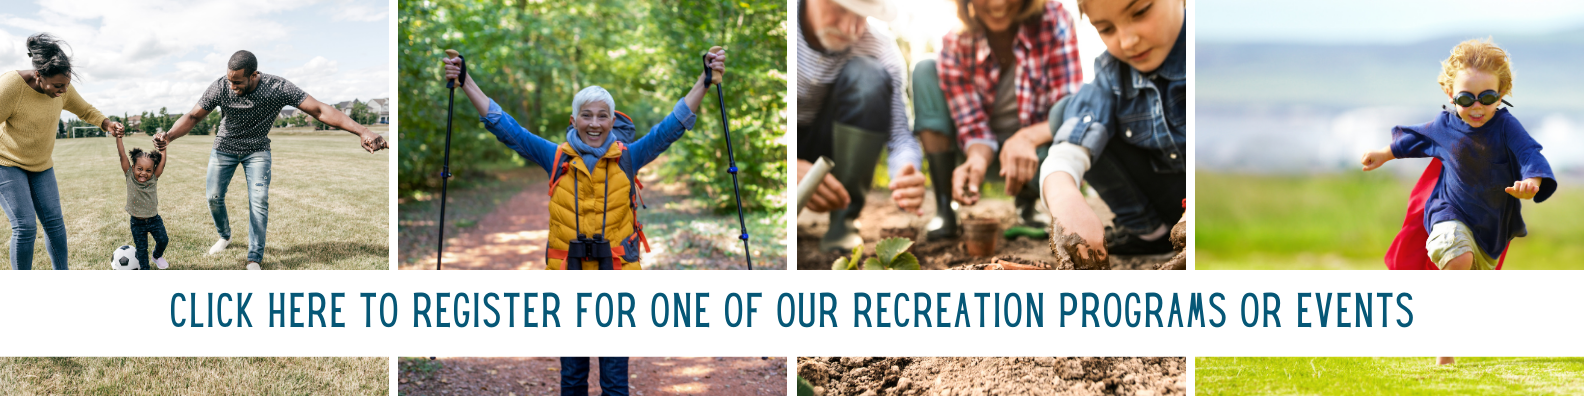 click here to register for one of our recreation programs or events